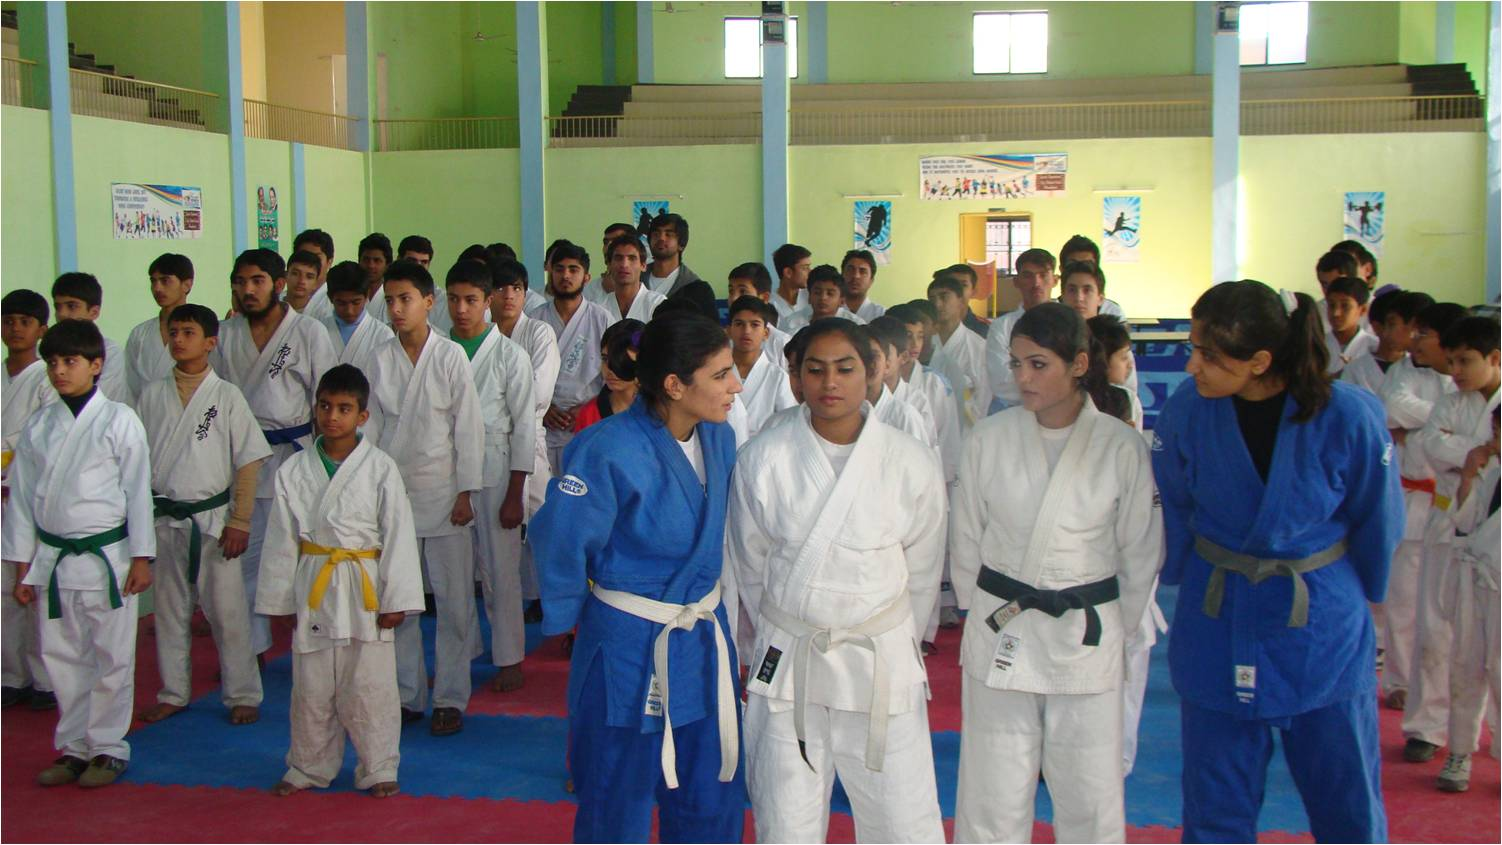 Rawal Cadet College clinched the trophy by securing 155 in 1ST Quaid-e-Azam Judo Championships 2012